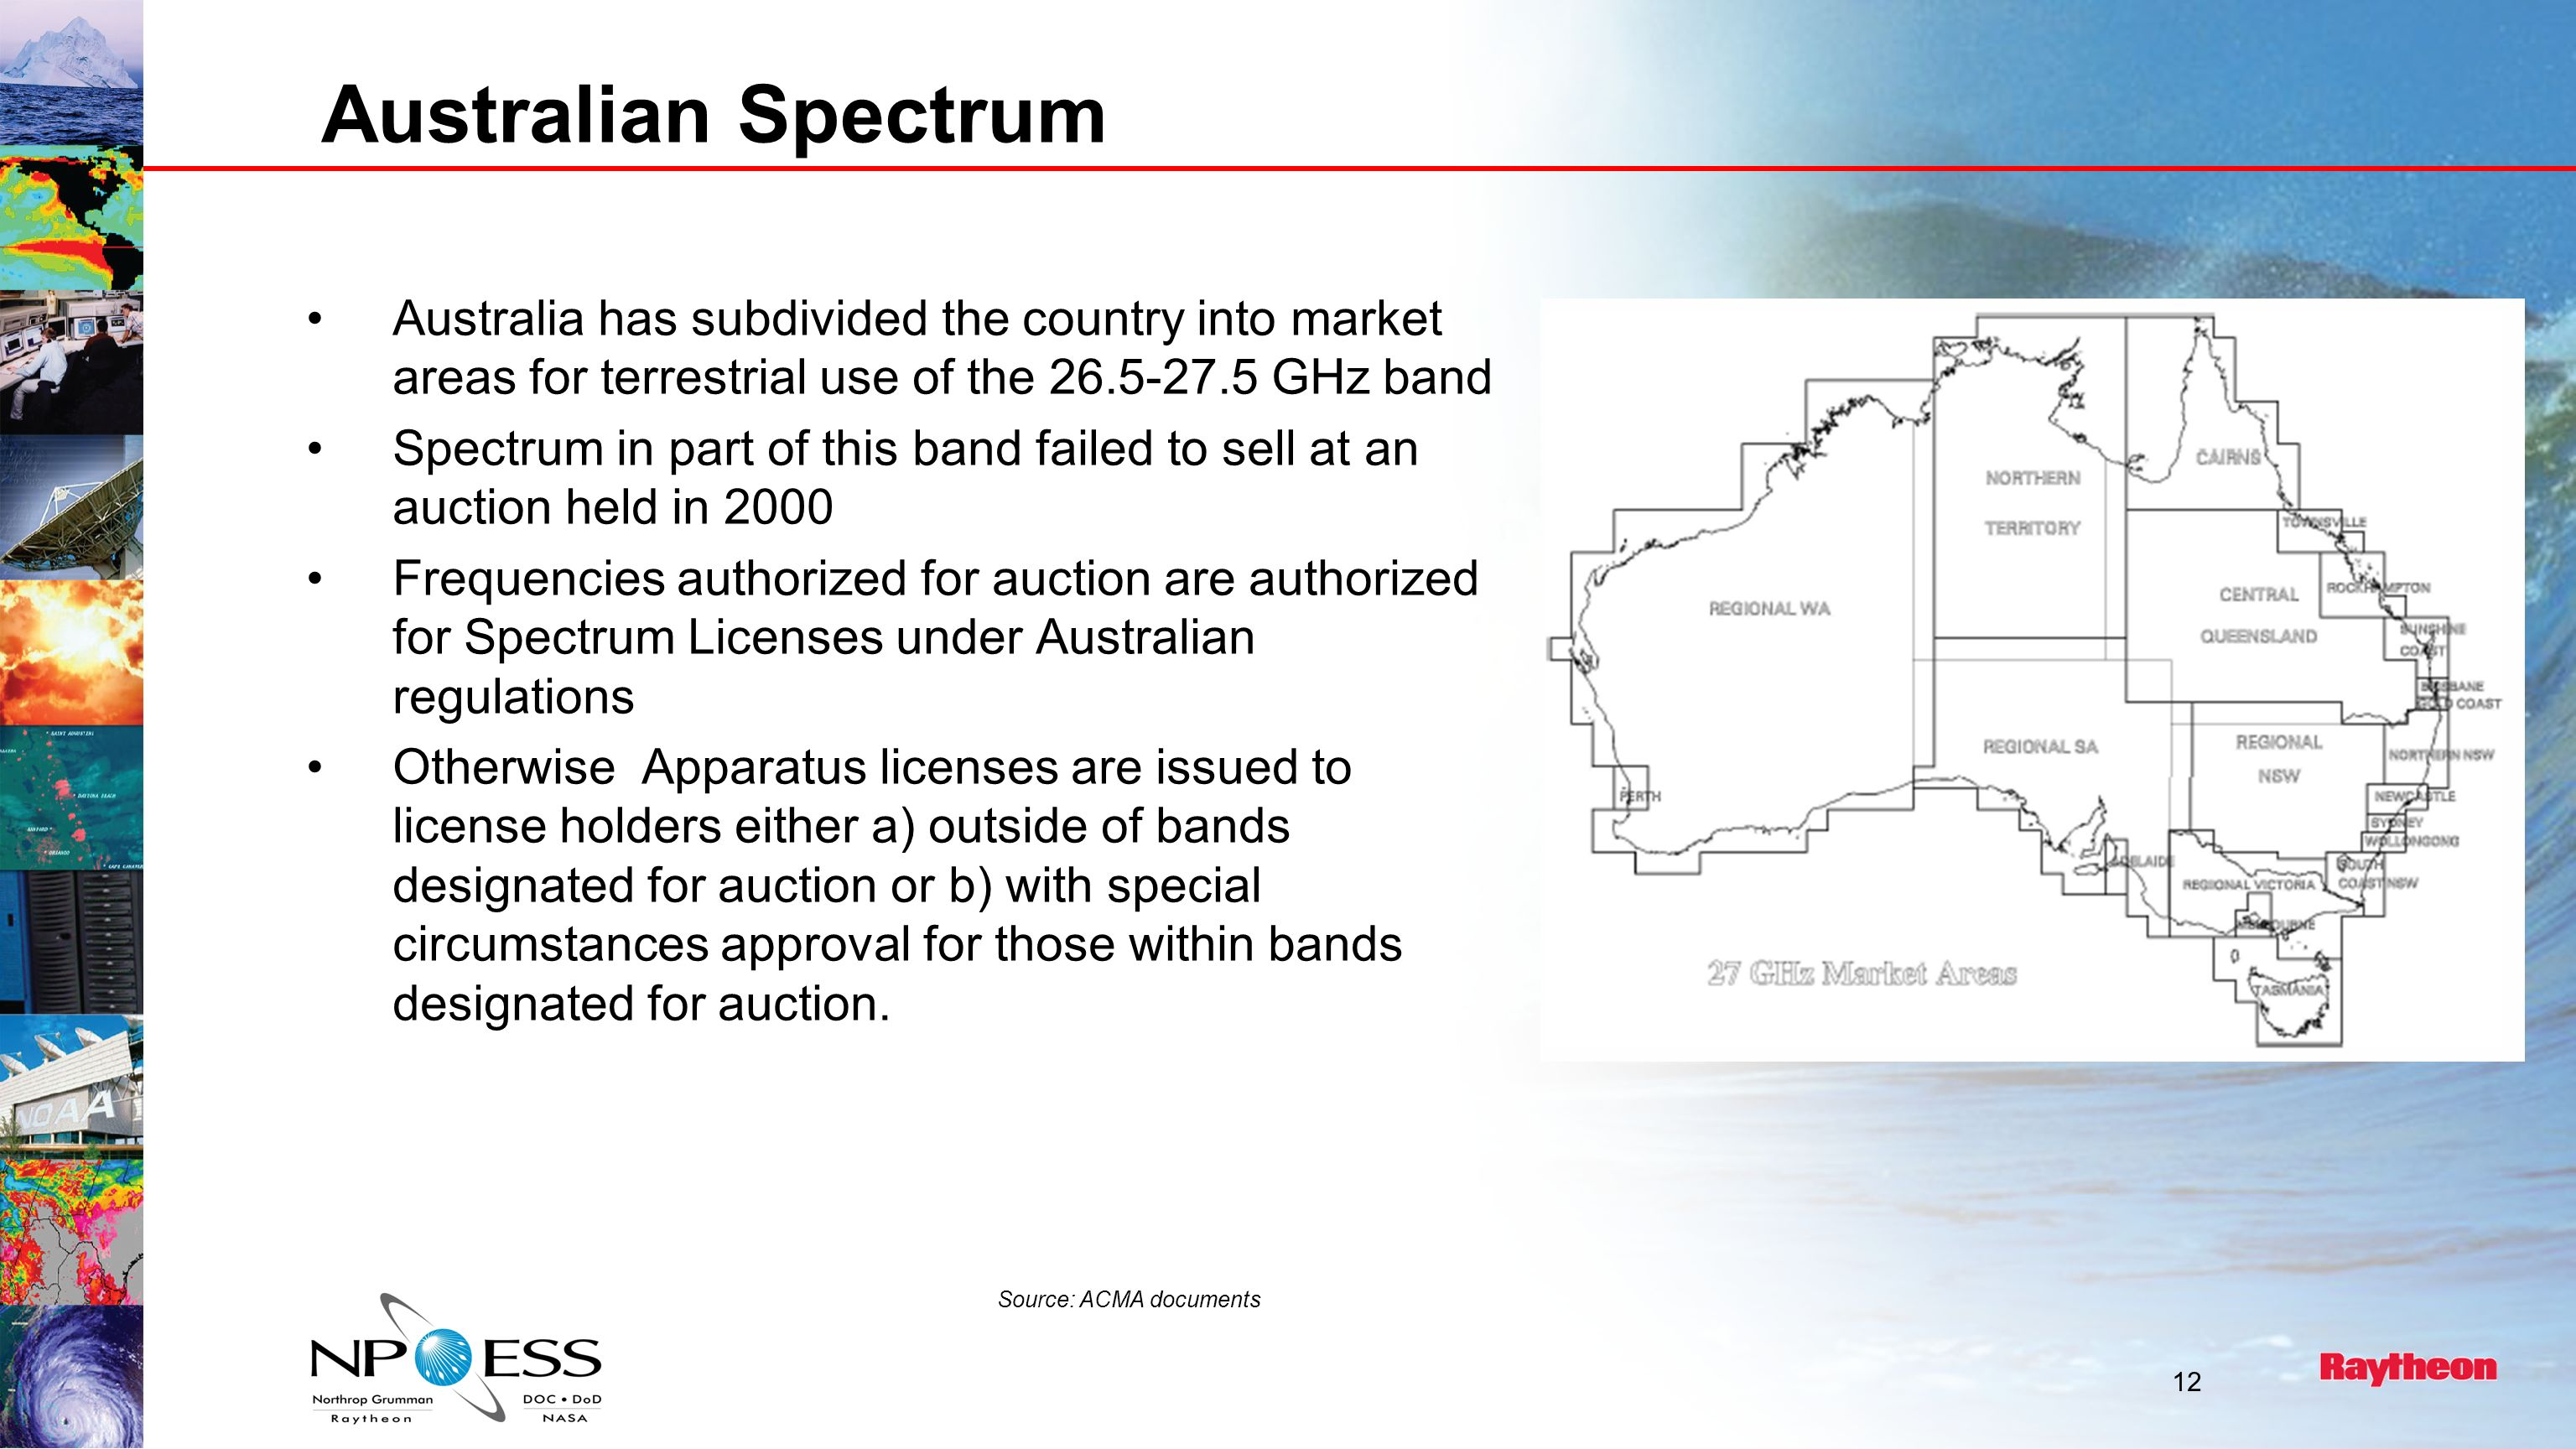 Australian Spectrum Australia has subdivided the country into market areas for terrestrial use of the 26.5-27.5 GHz band Spectrum in part of this band failed to sell at an auction held in 2000 Frequencies authorized for auction are authorized for Spectrum Licenses under Australian regulations Otherwise Apparatus licenses are issued to license holders either a) outside of bands designated for auction or b) with special circumstances approval for those within bands designated for auction.